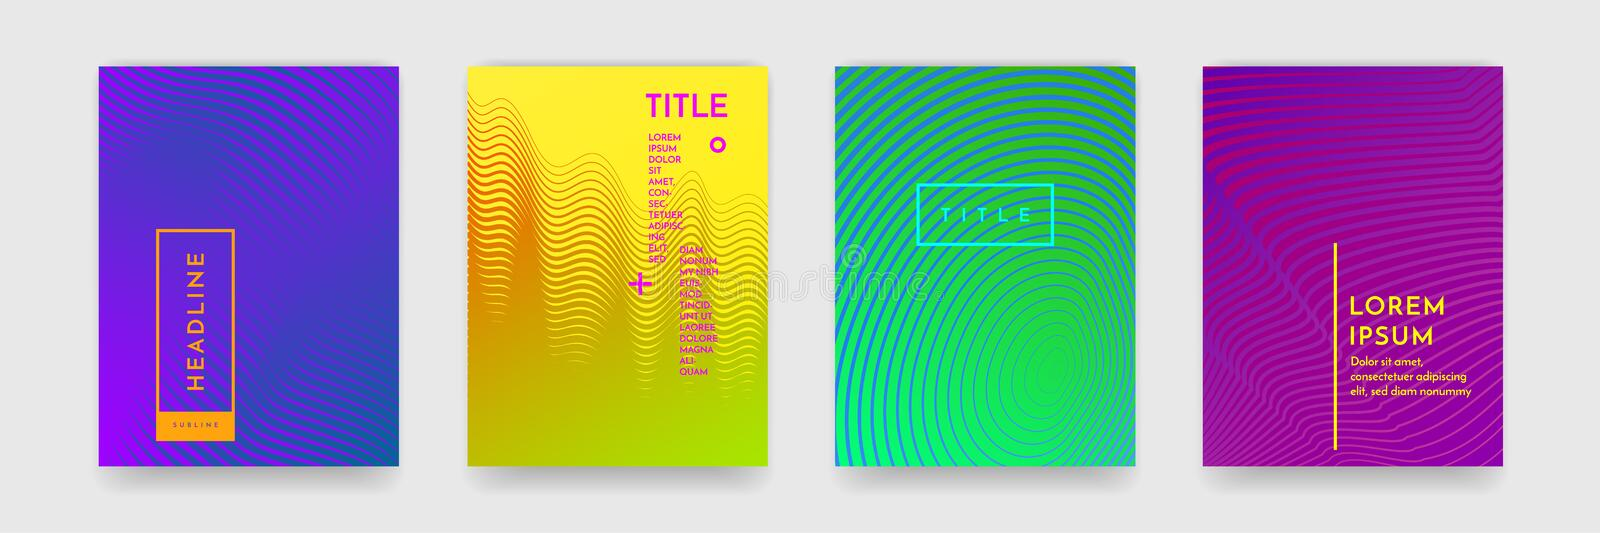 Color gradient abstract geometric pattern texture for book cover template vector set vector illustration